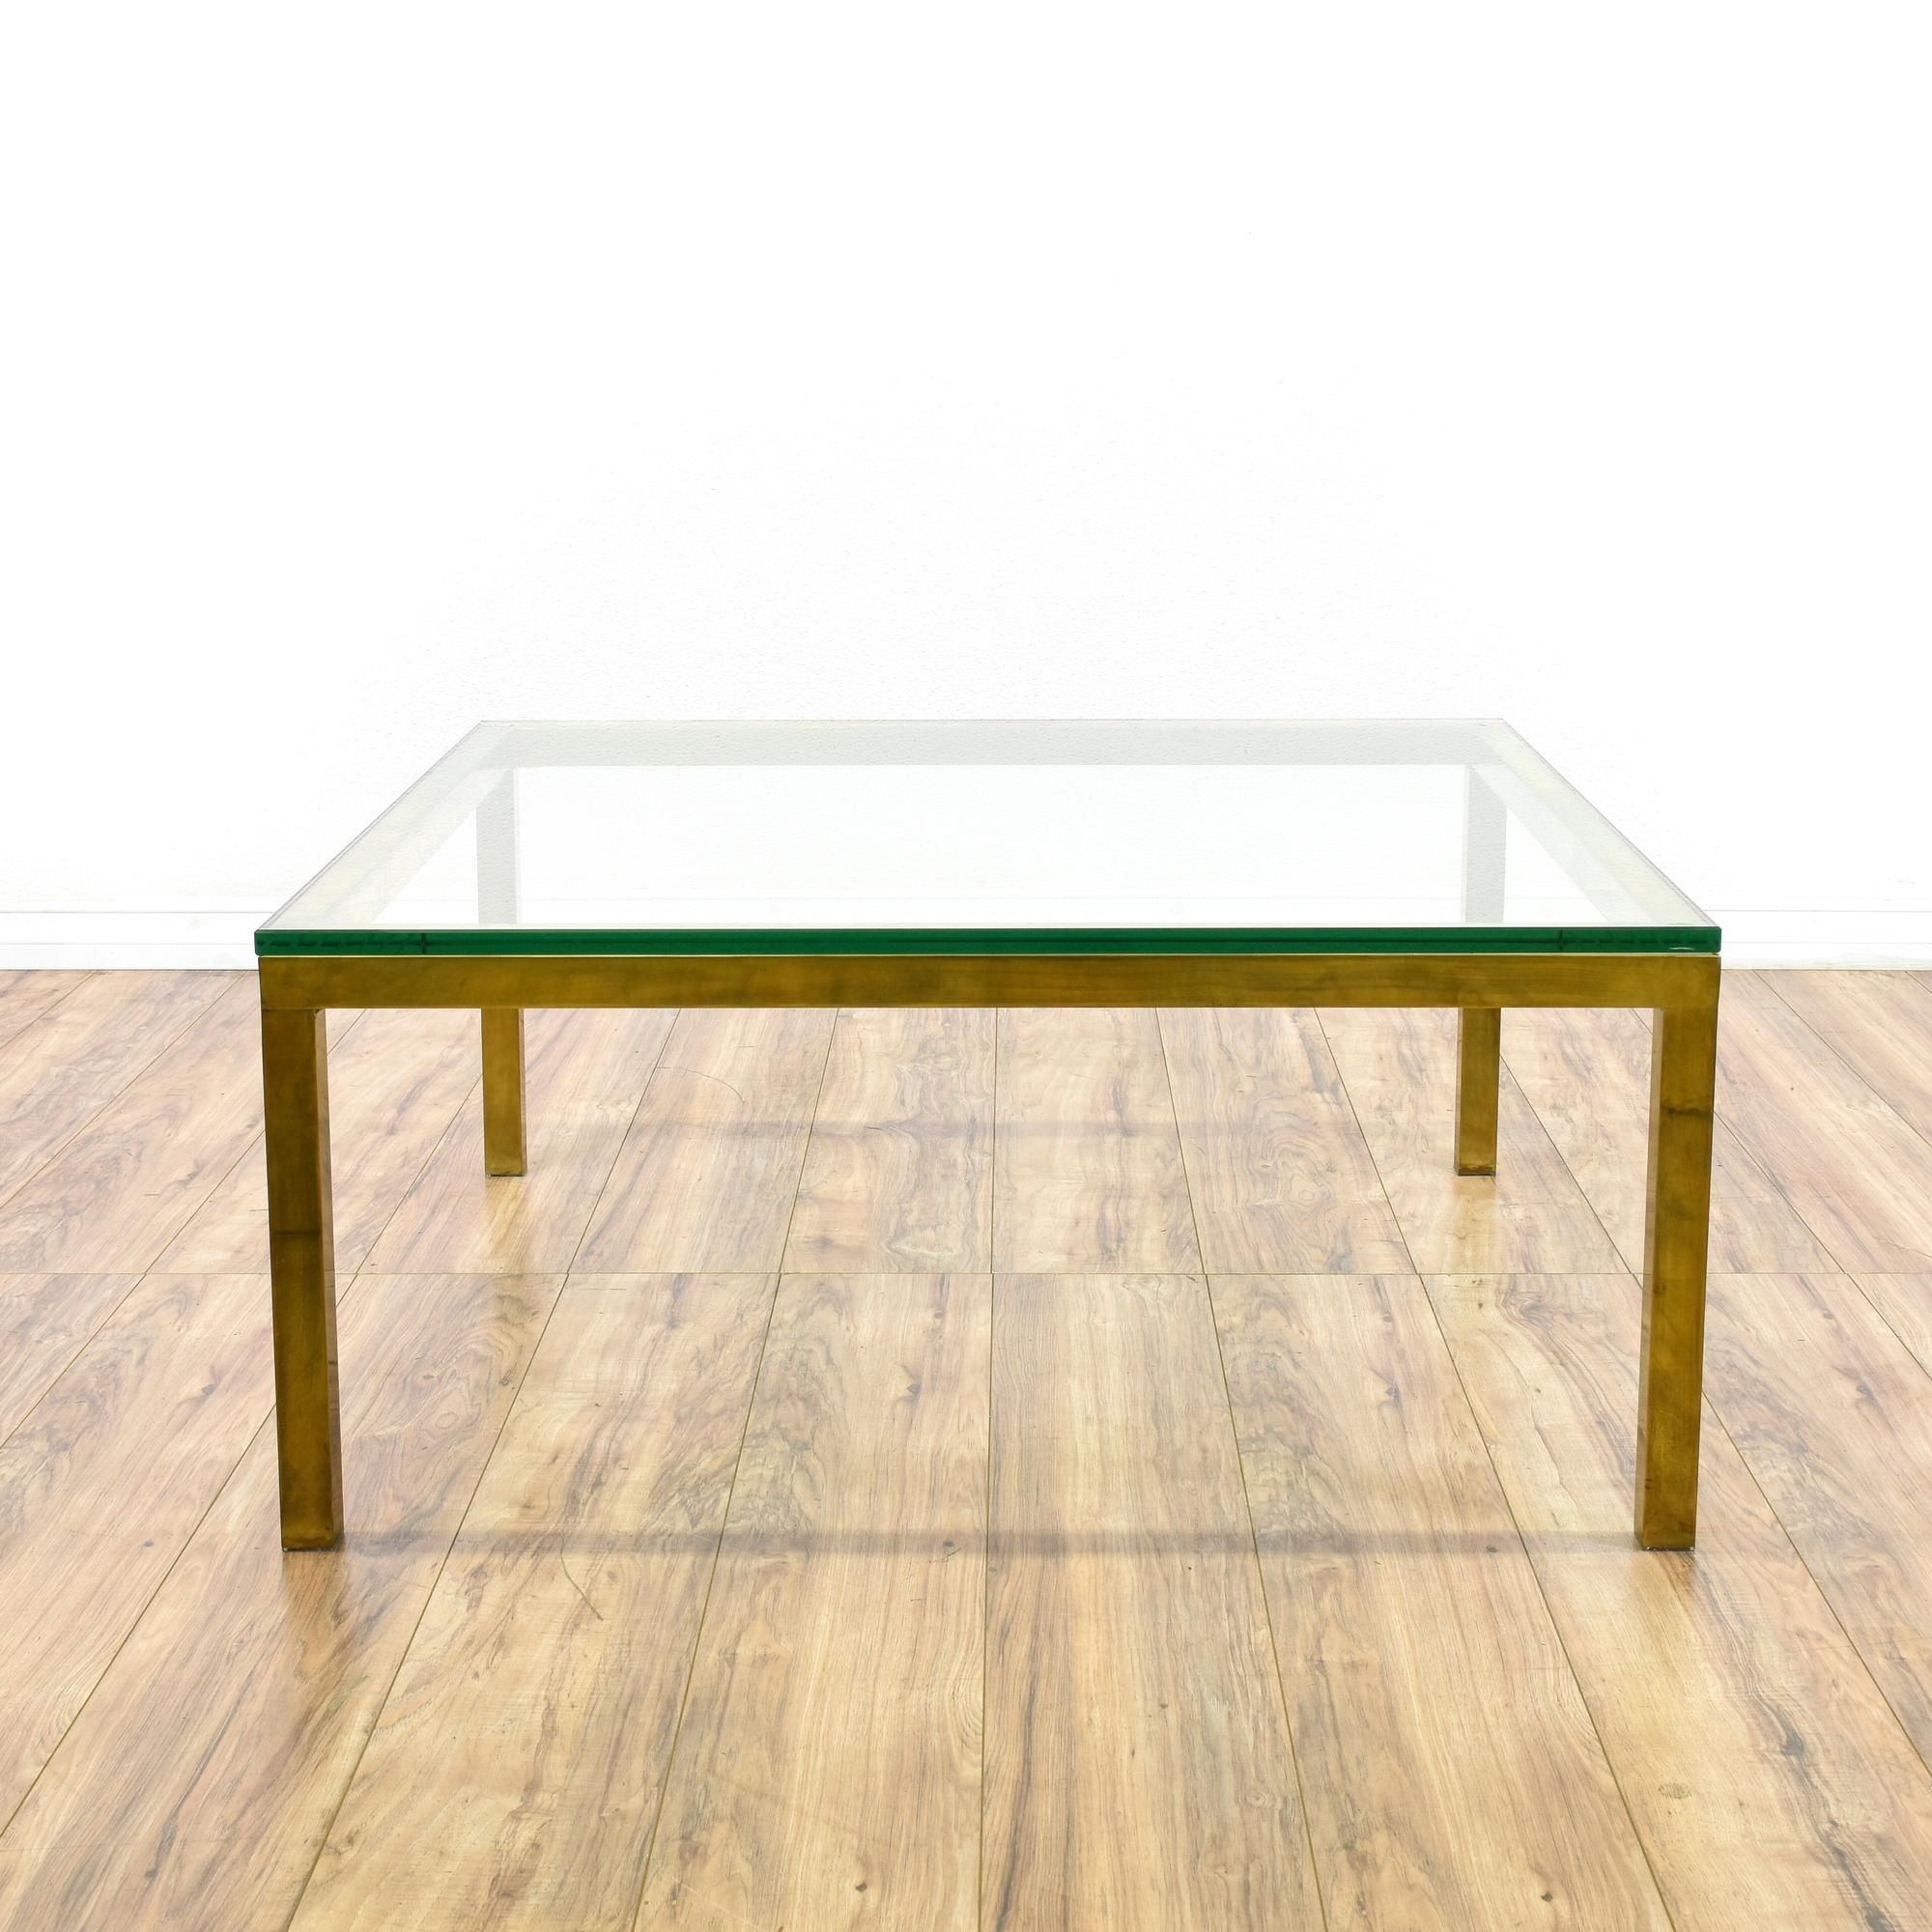 This Coffee Table Is Featured In A Solid Steel With